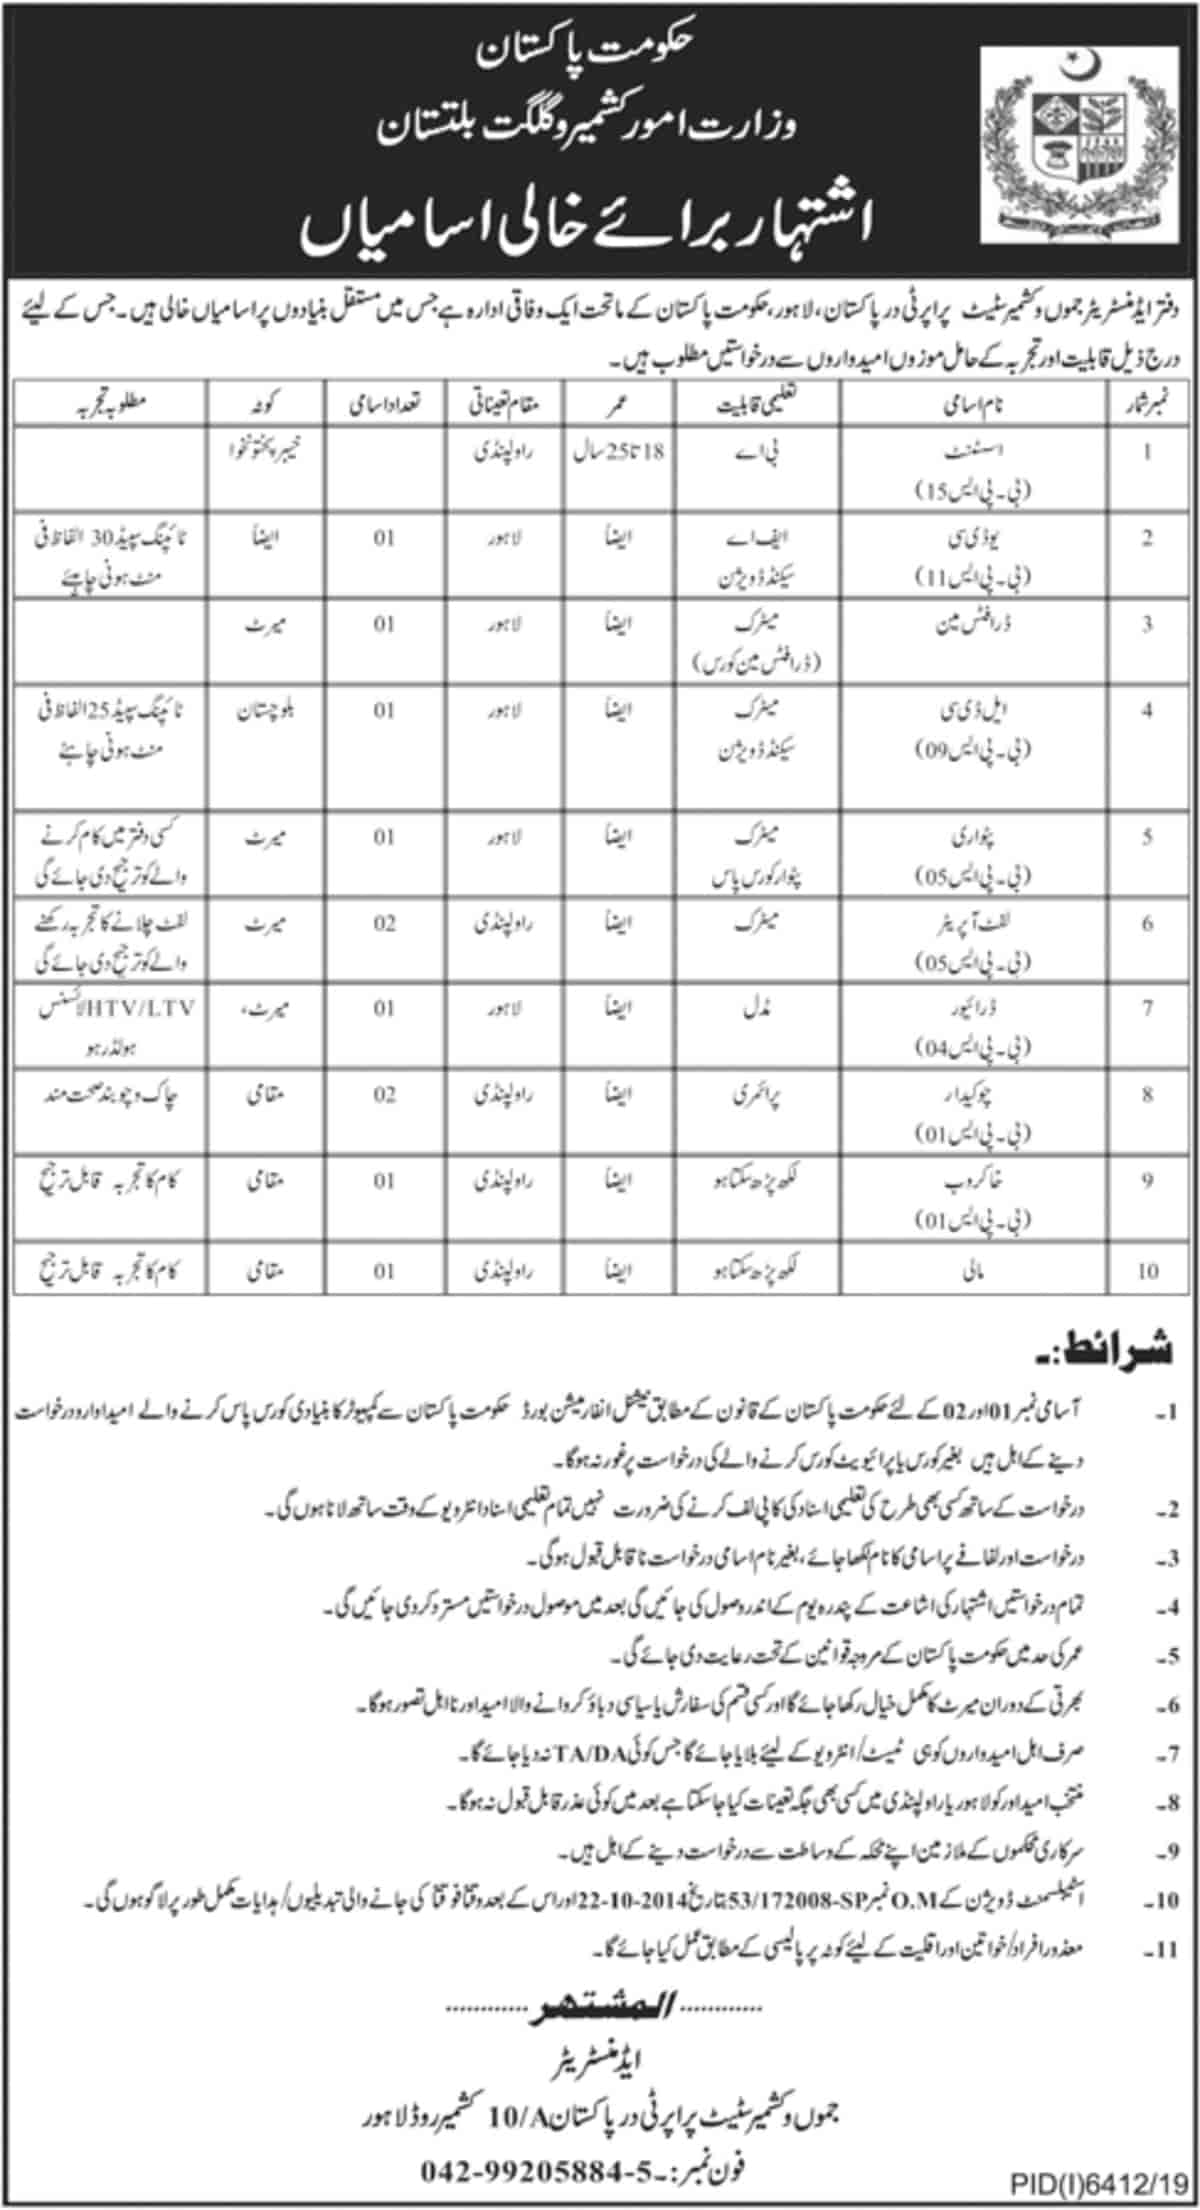 Government of Pakistan Ministry of Kashmir Affairs and Gilgit Baltistan Jobs 2020